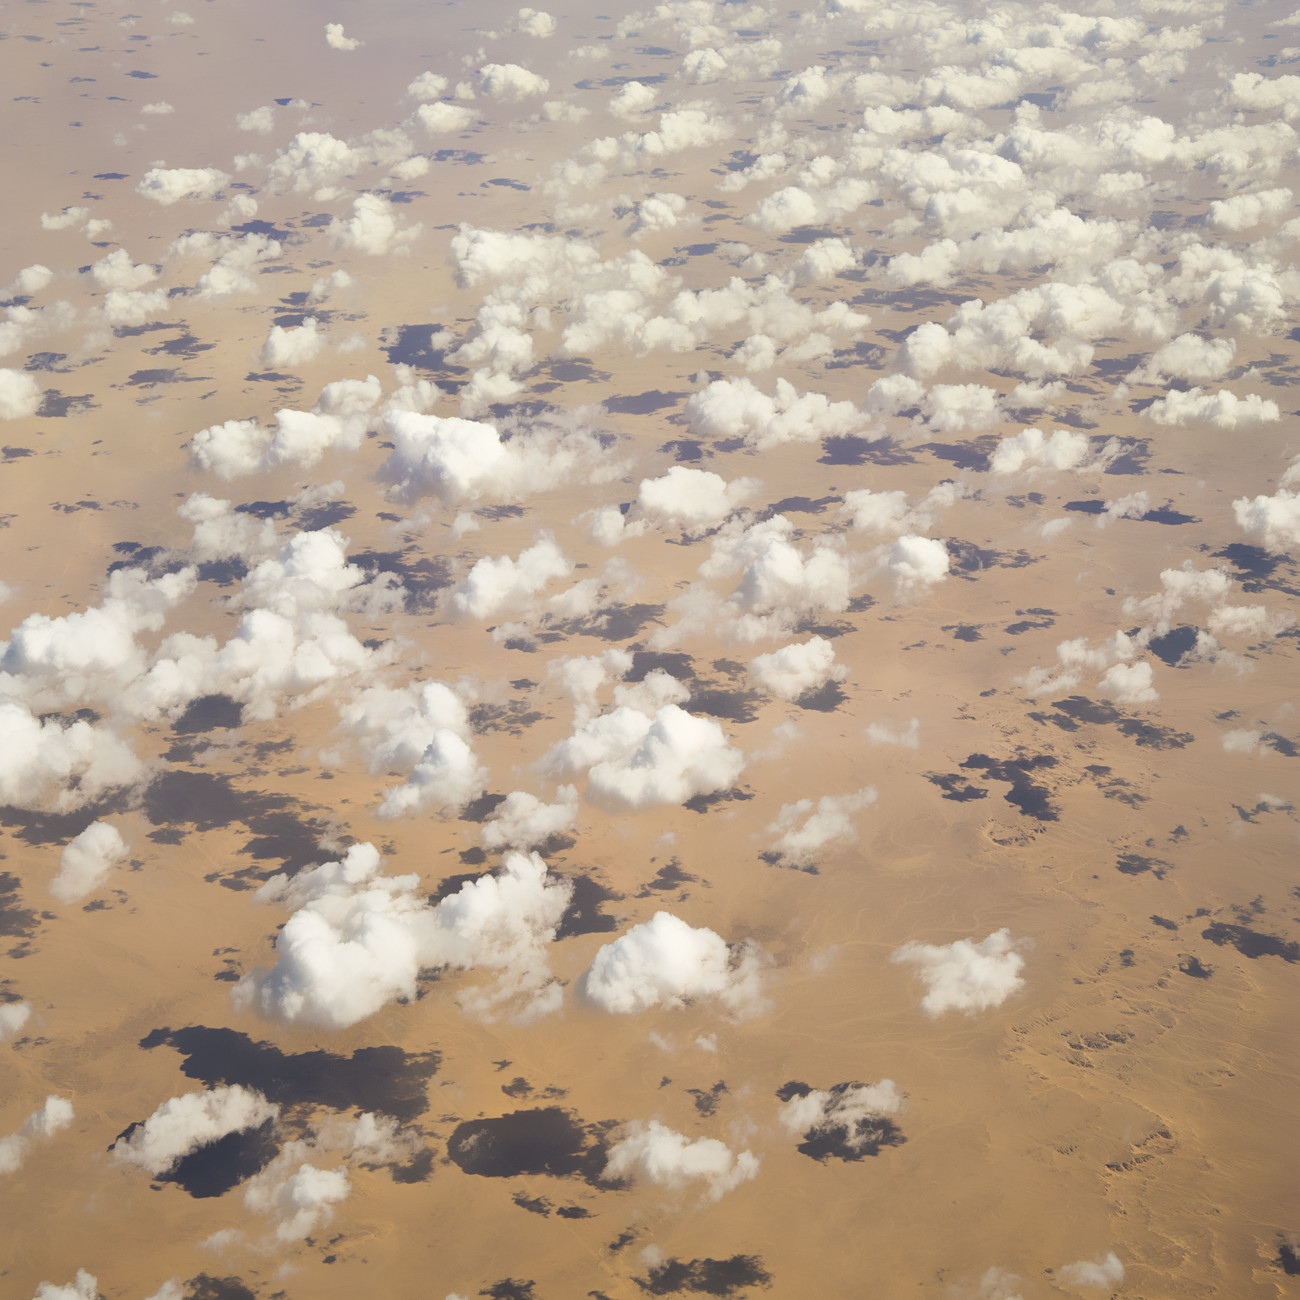 Clouds on the Sahara